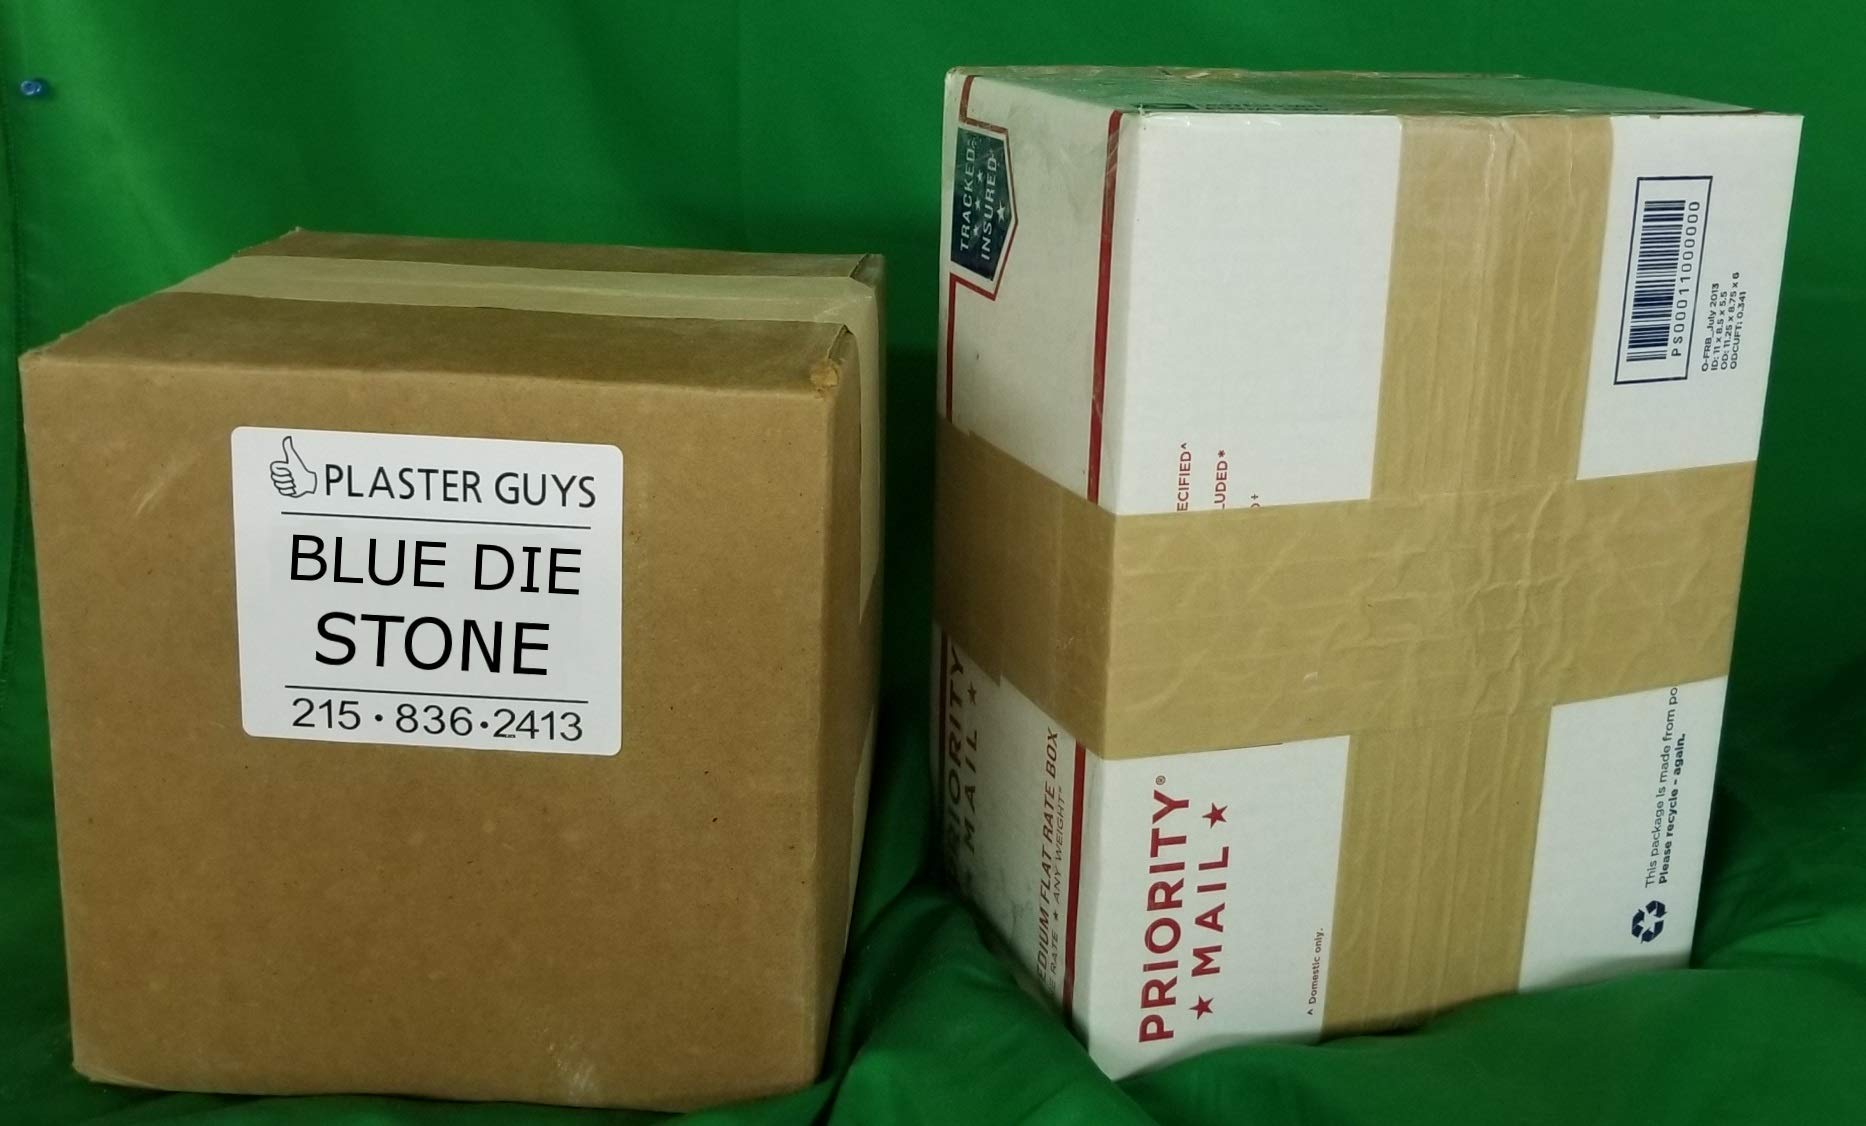 Blue Dental Die Stone 38 Lb Bag - Type 4 (IV) - Fast Shipping! Made in The USA!